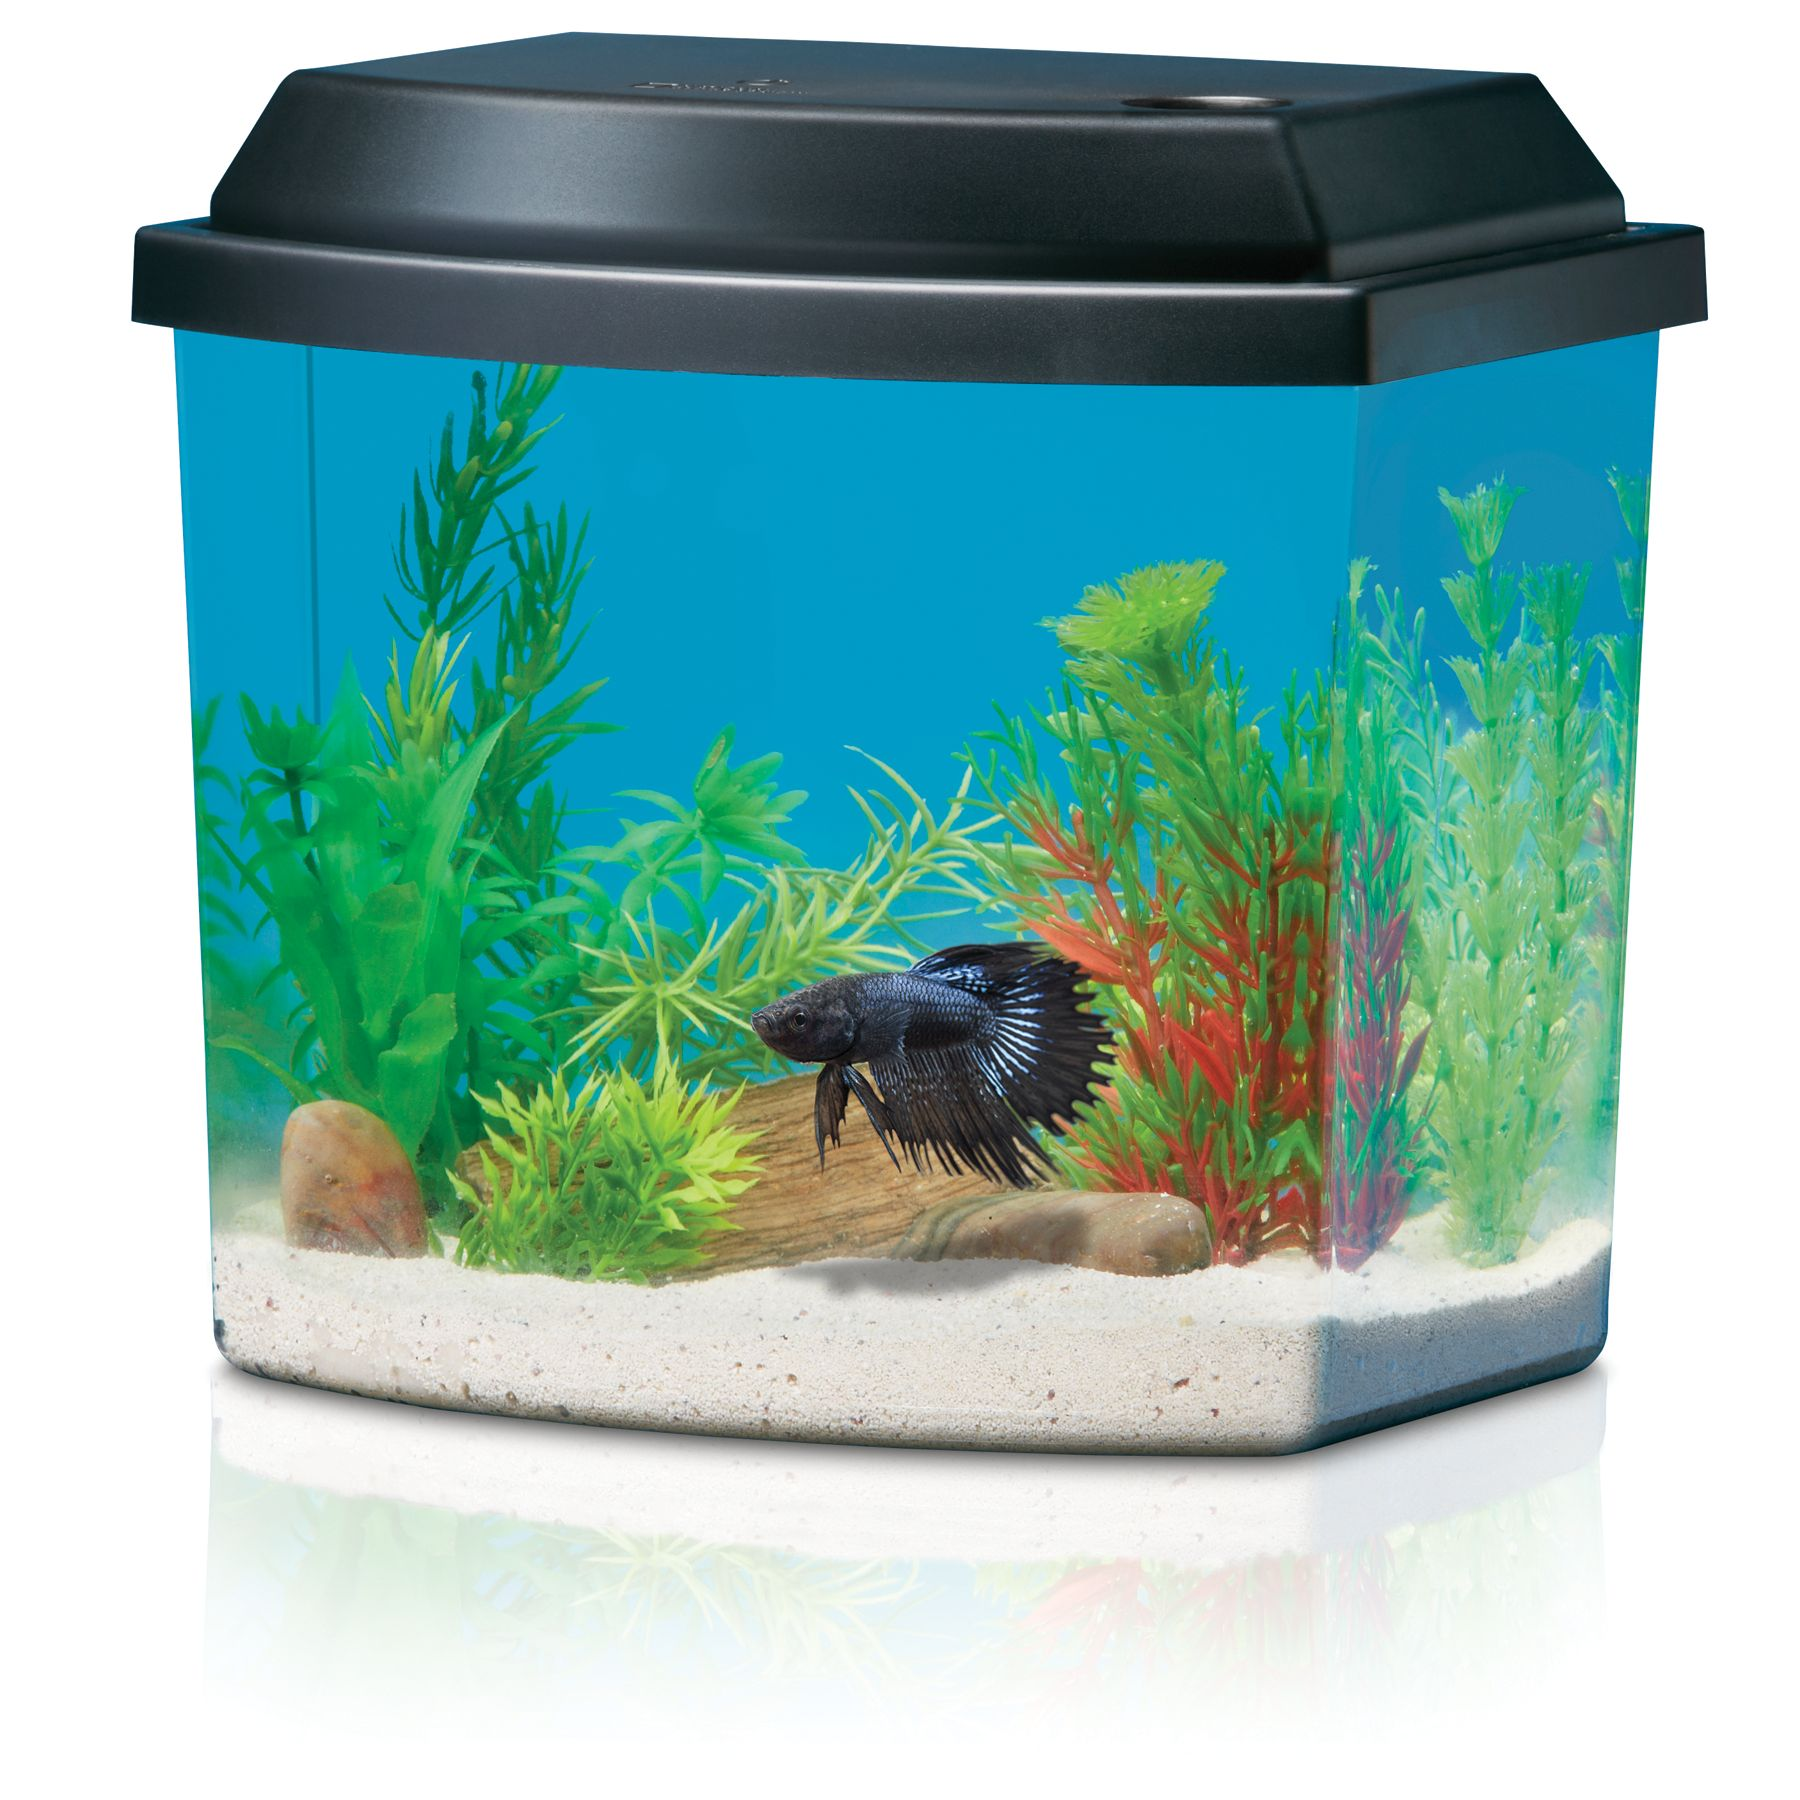 National Geographic, Half-Moon Aqua Oasis Starter Kit size: 1.2 Gal, Black & Clear 5210305